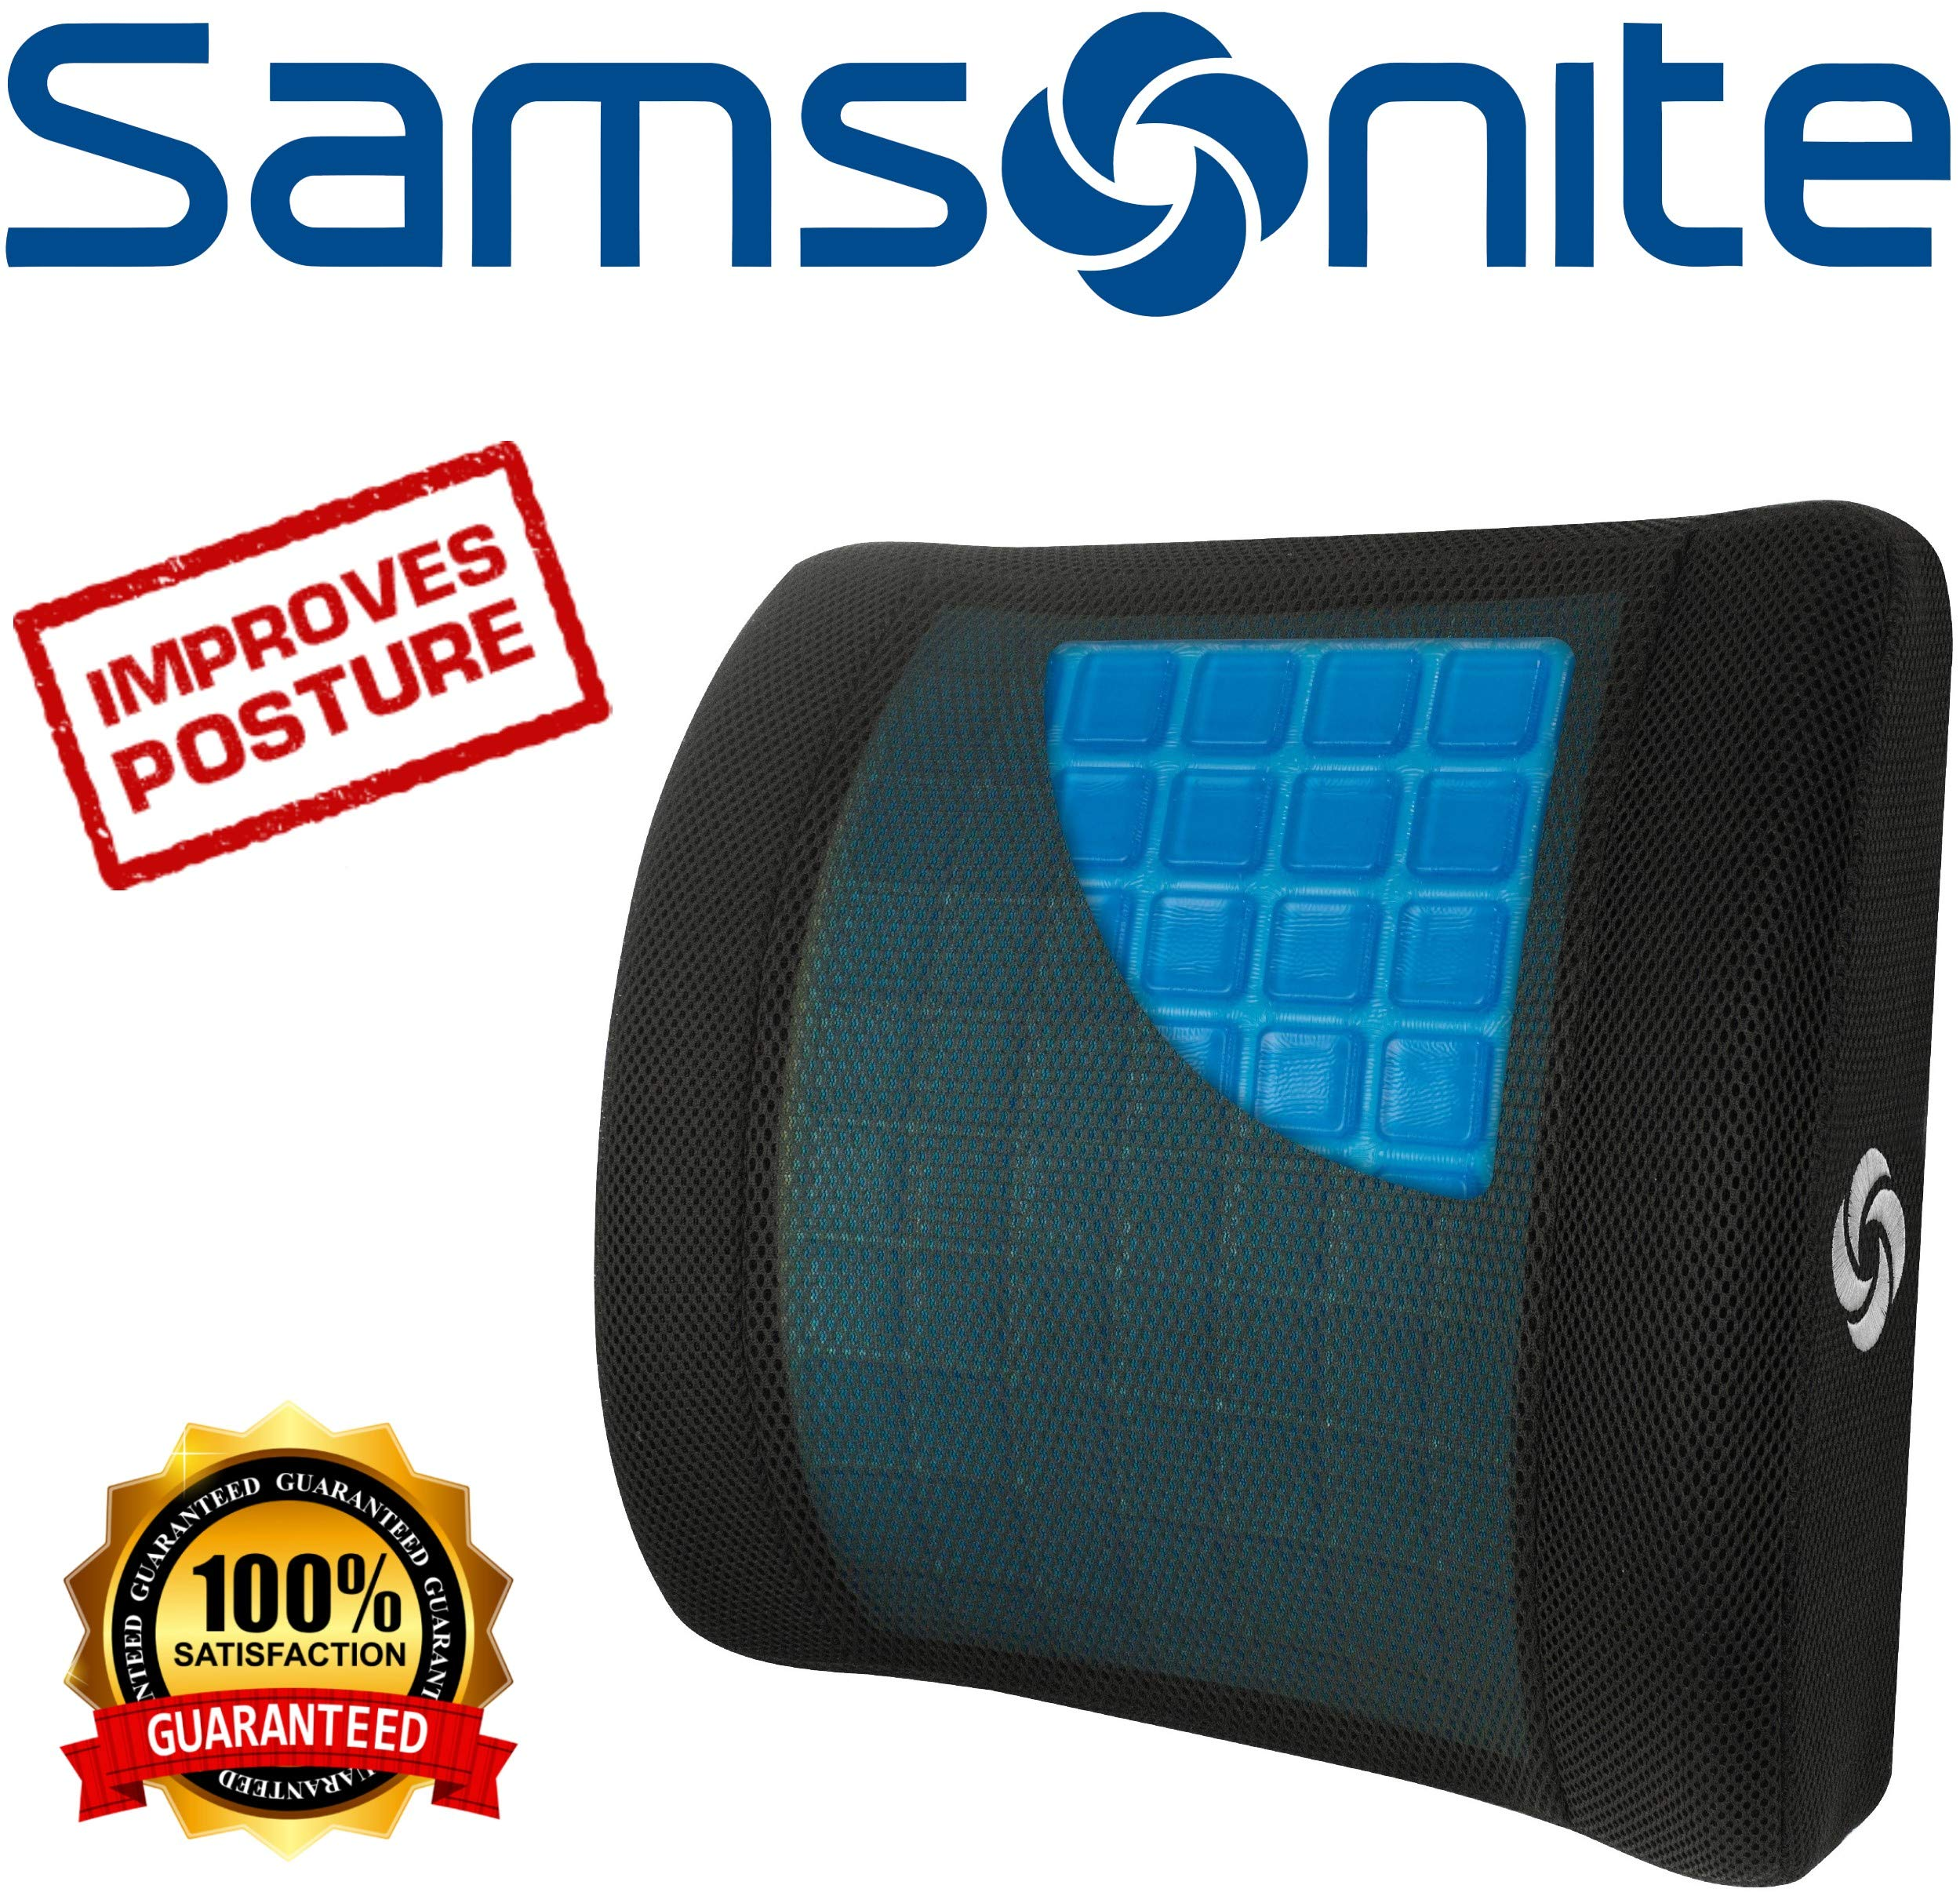 Samsonite SA6086 - Lumbar Support Pillow with Mild Cooling Gel [Cooling effect is subjective, and varies by personal sensitivity] - Helps Relieve Lower Back Pain - Premium Memory Foam